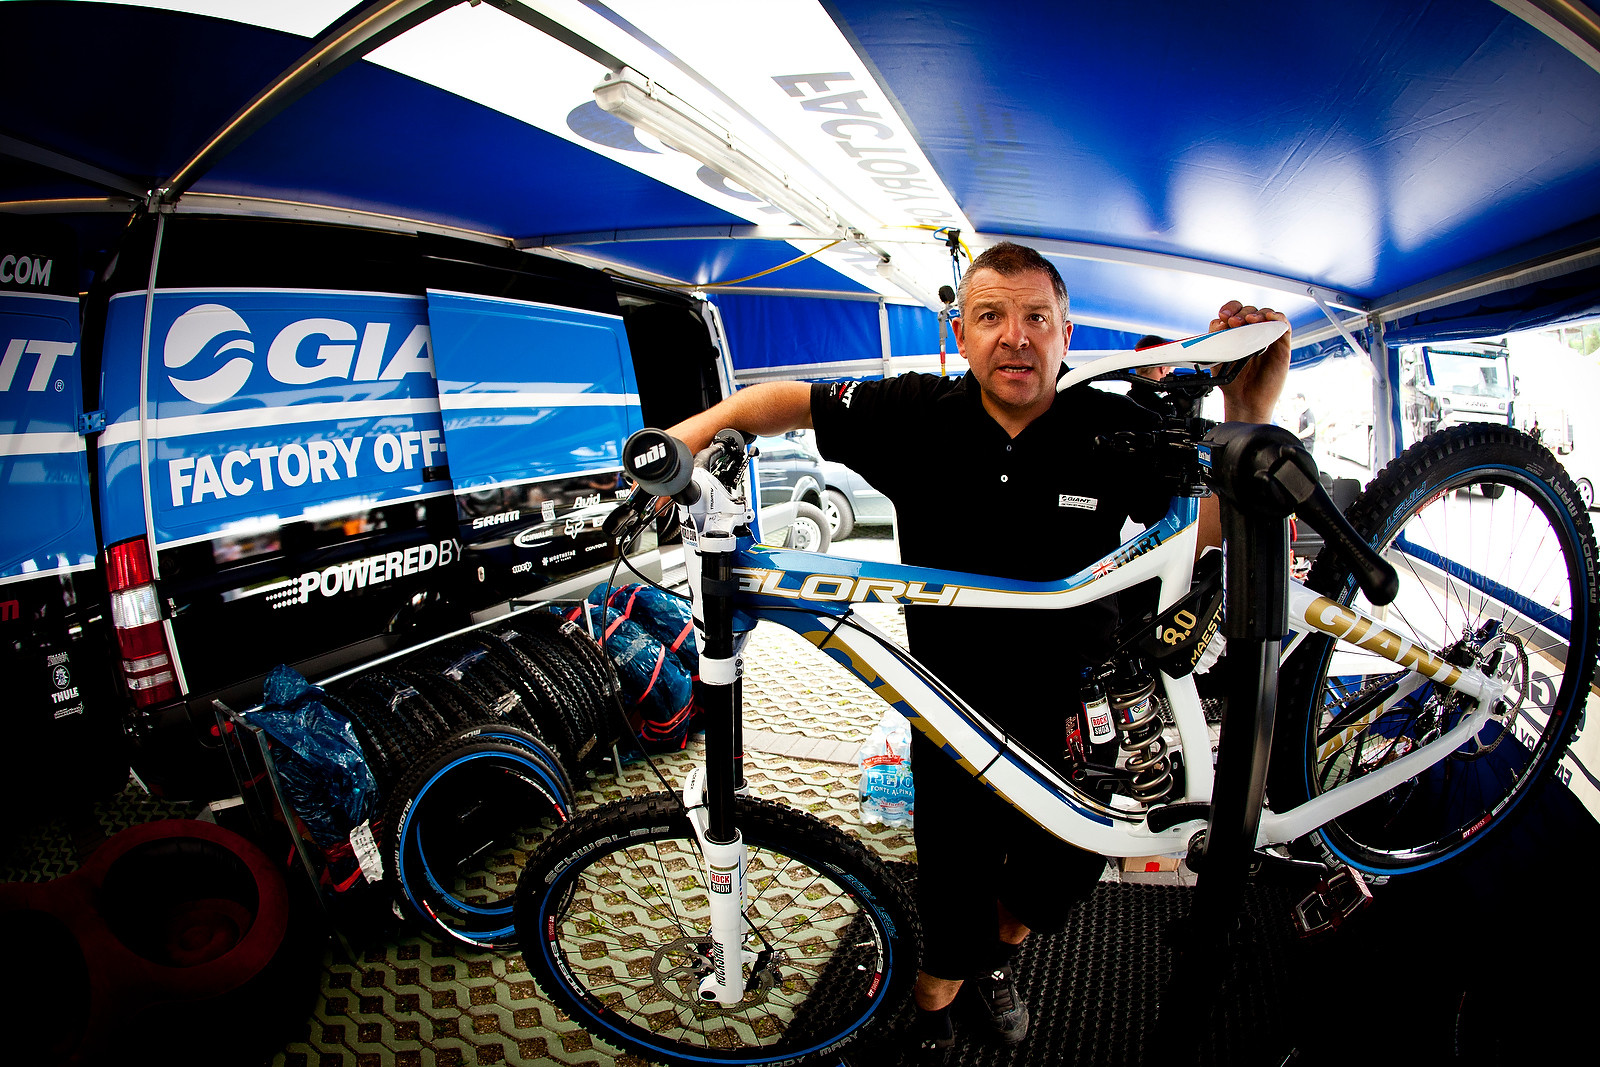 Danny Hart's Giant Glory at Val di Sole - 2012 UCI World Cup, Val di Sole Day 1 - Mountain Biking Pictures - Vital MTB